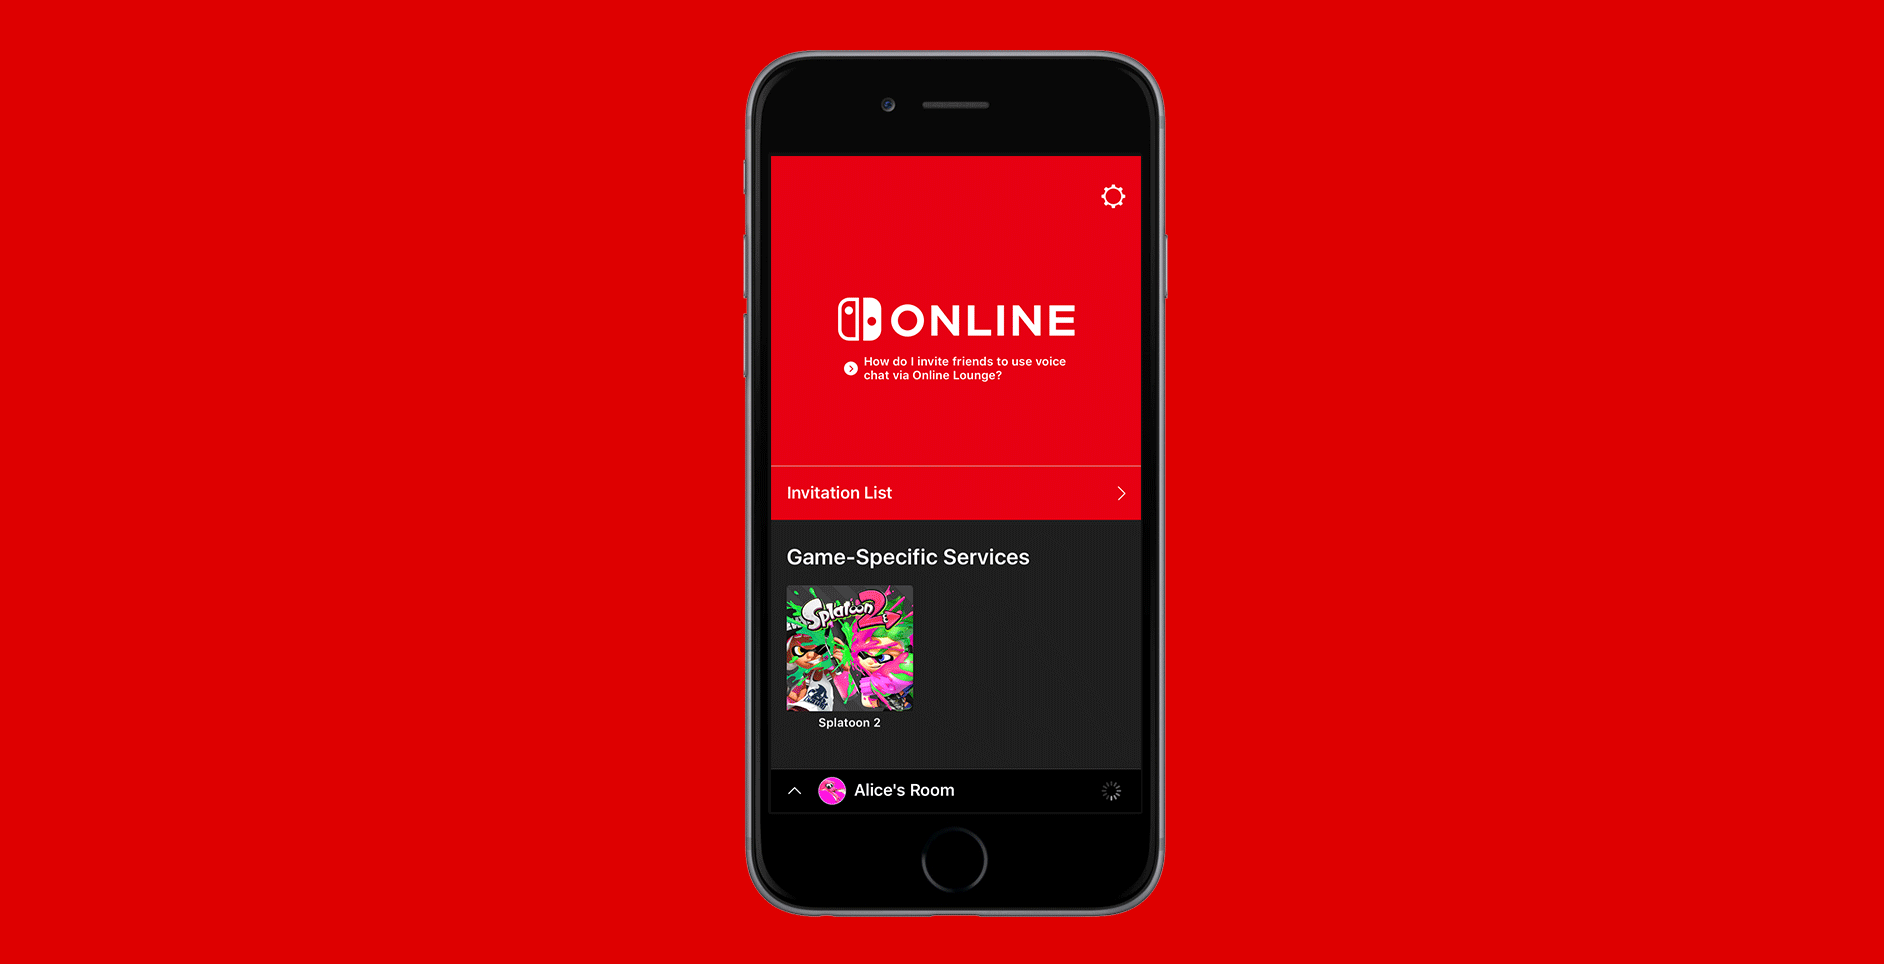 Switch online app is live on for IOS and Android